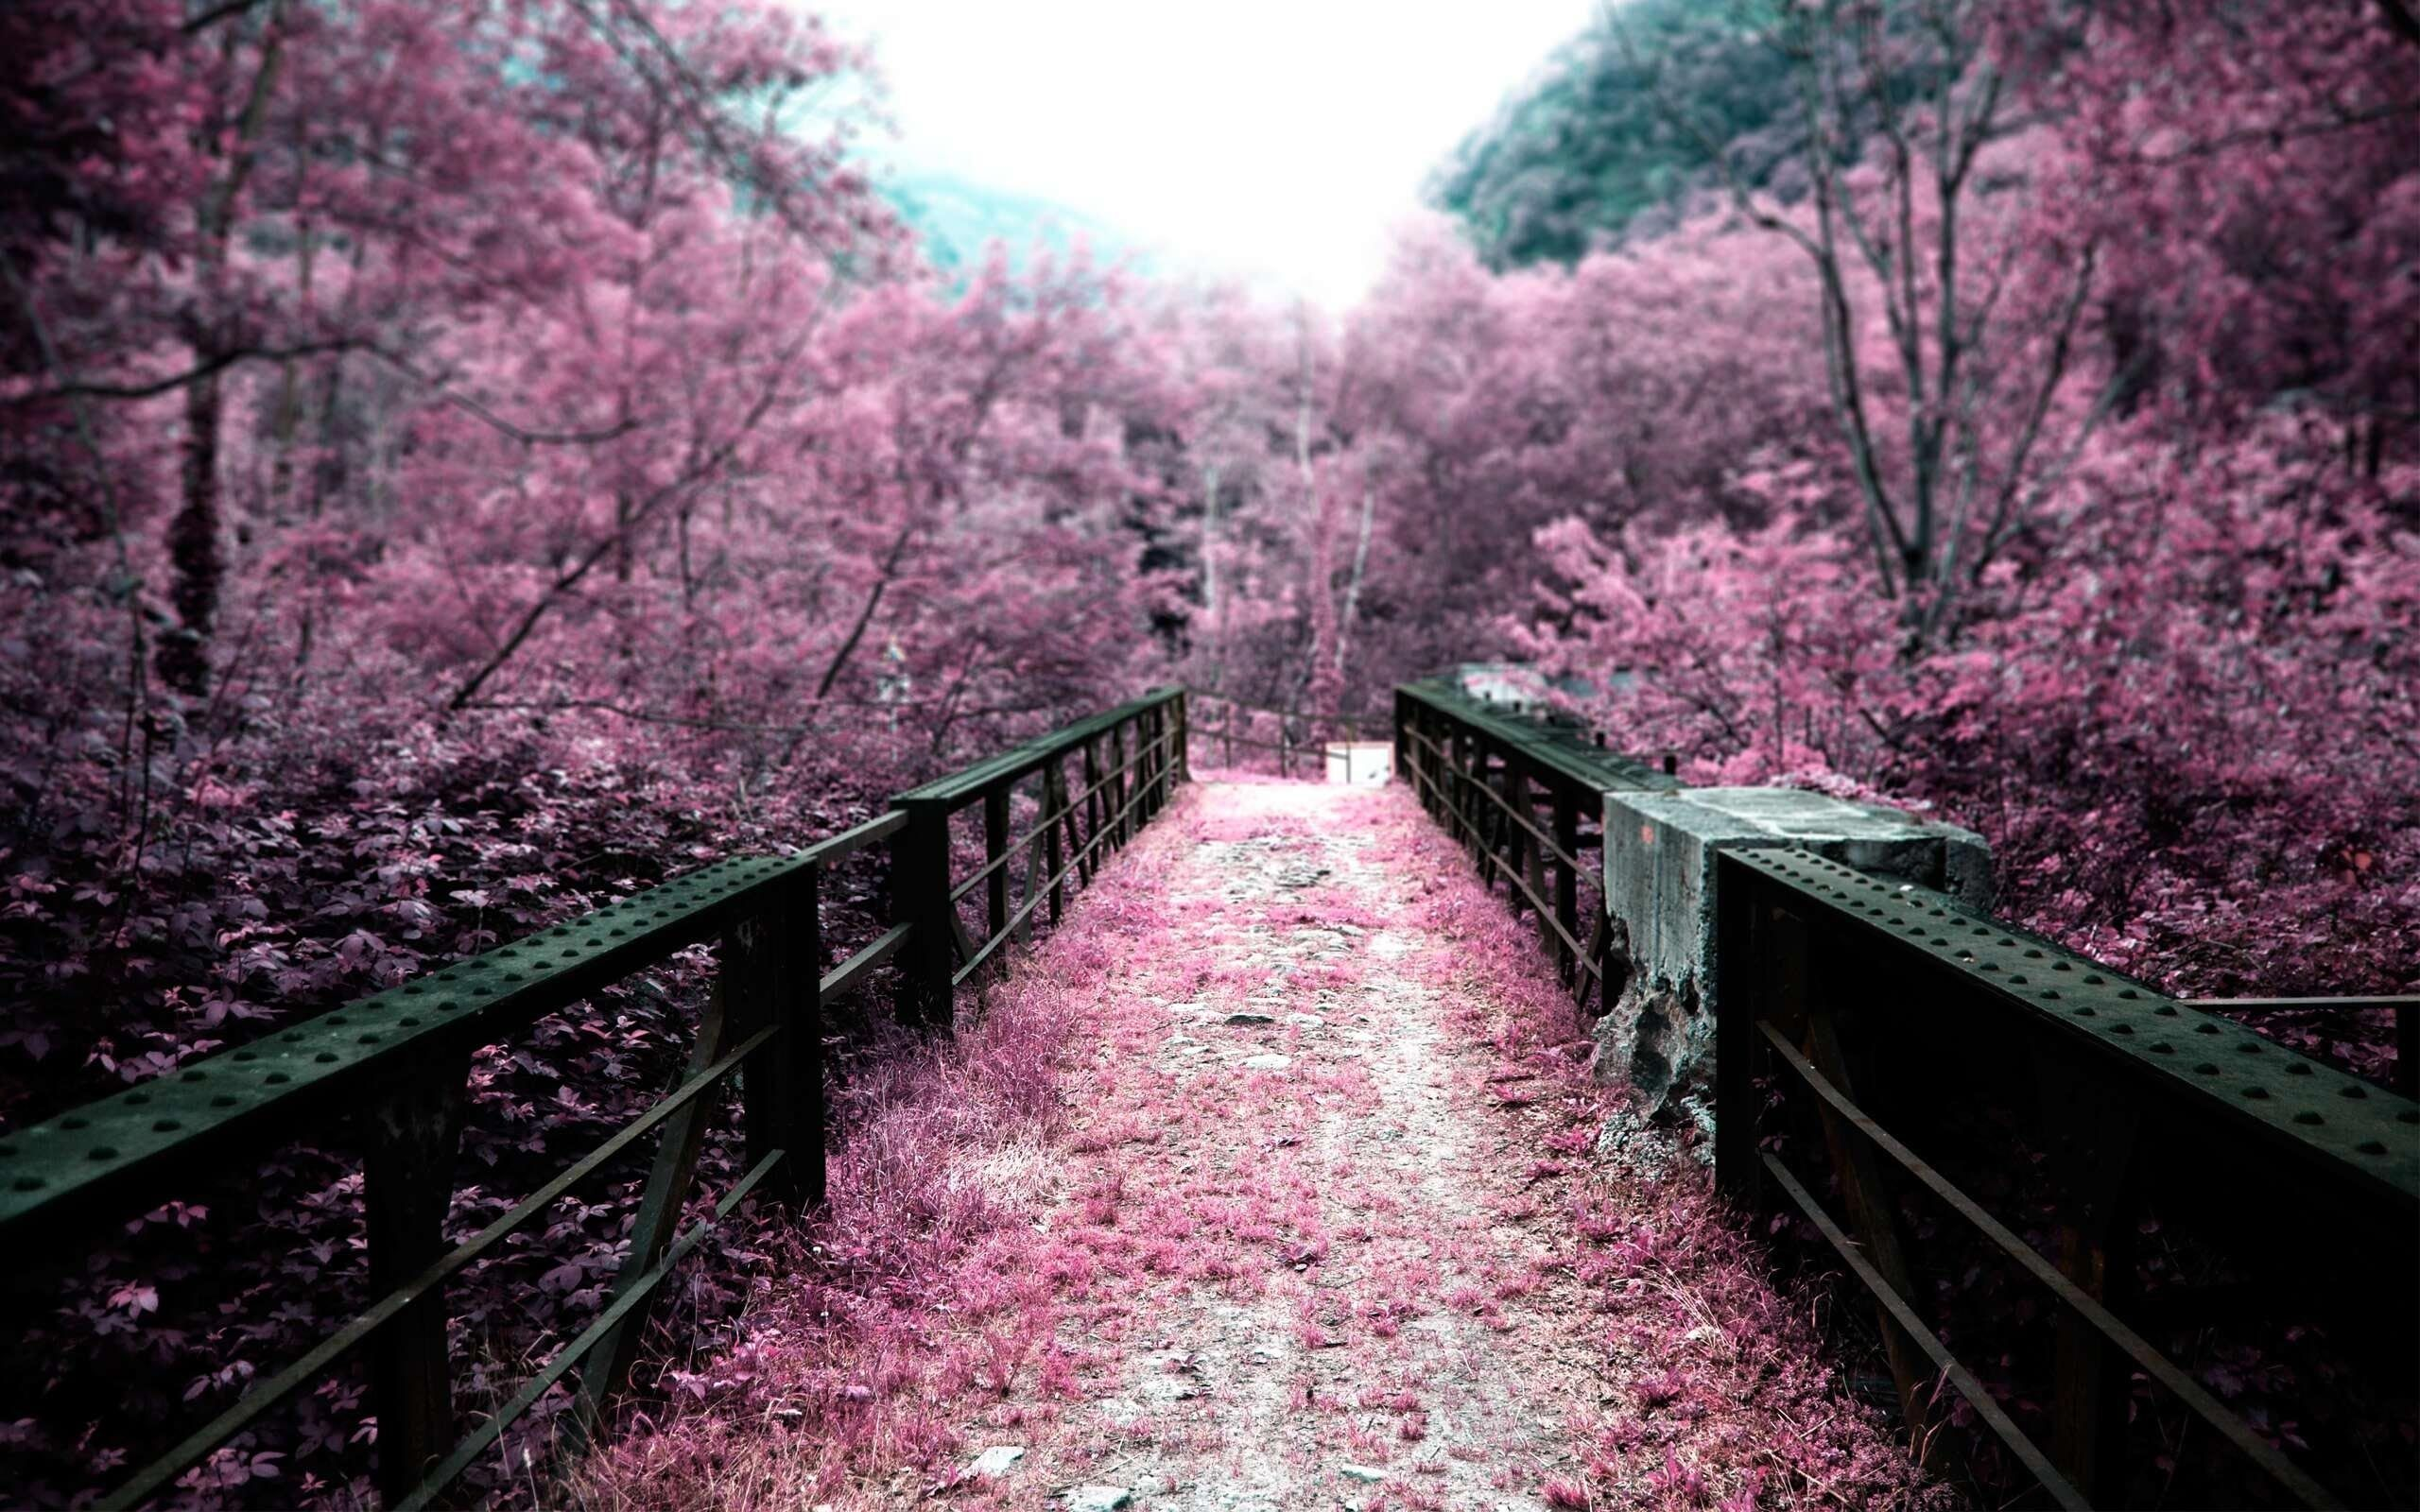 cherry blossoms bridges depth of field selective coloring pink flowers wallpaper background - Japanese Garden Cherry Blossom Bridge